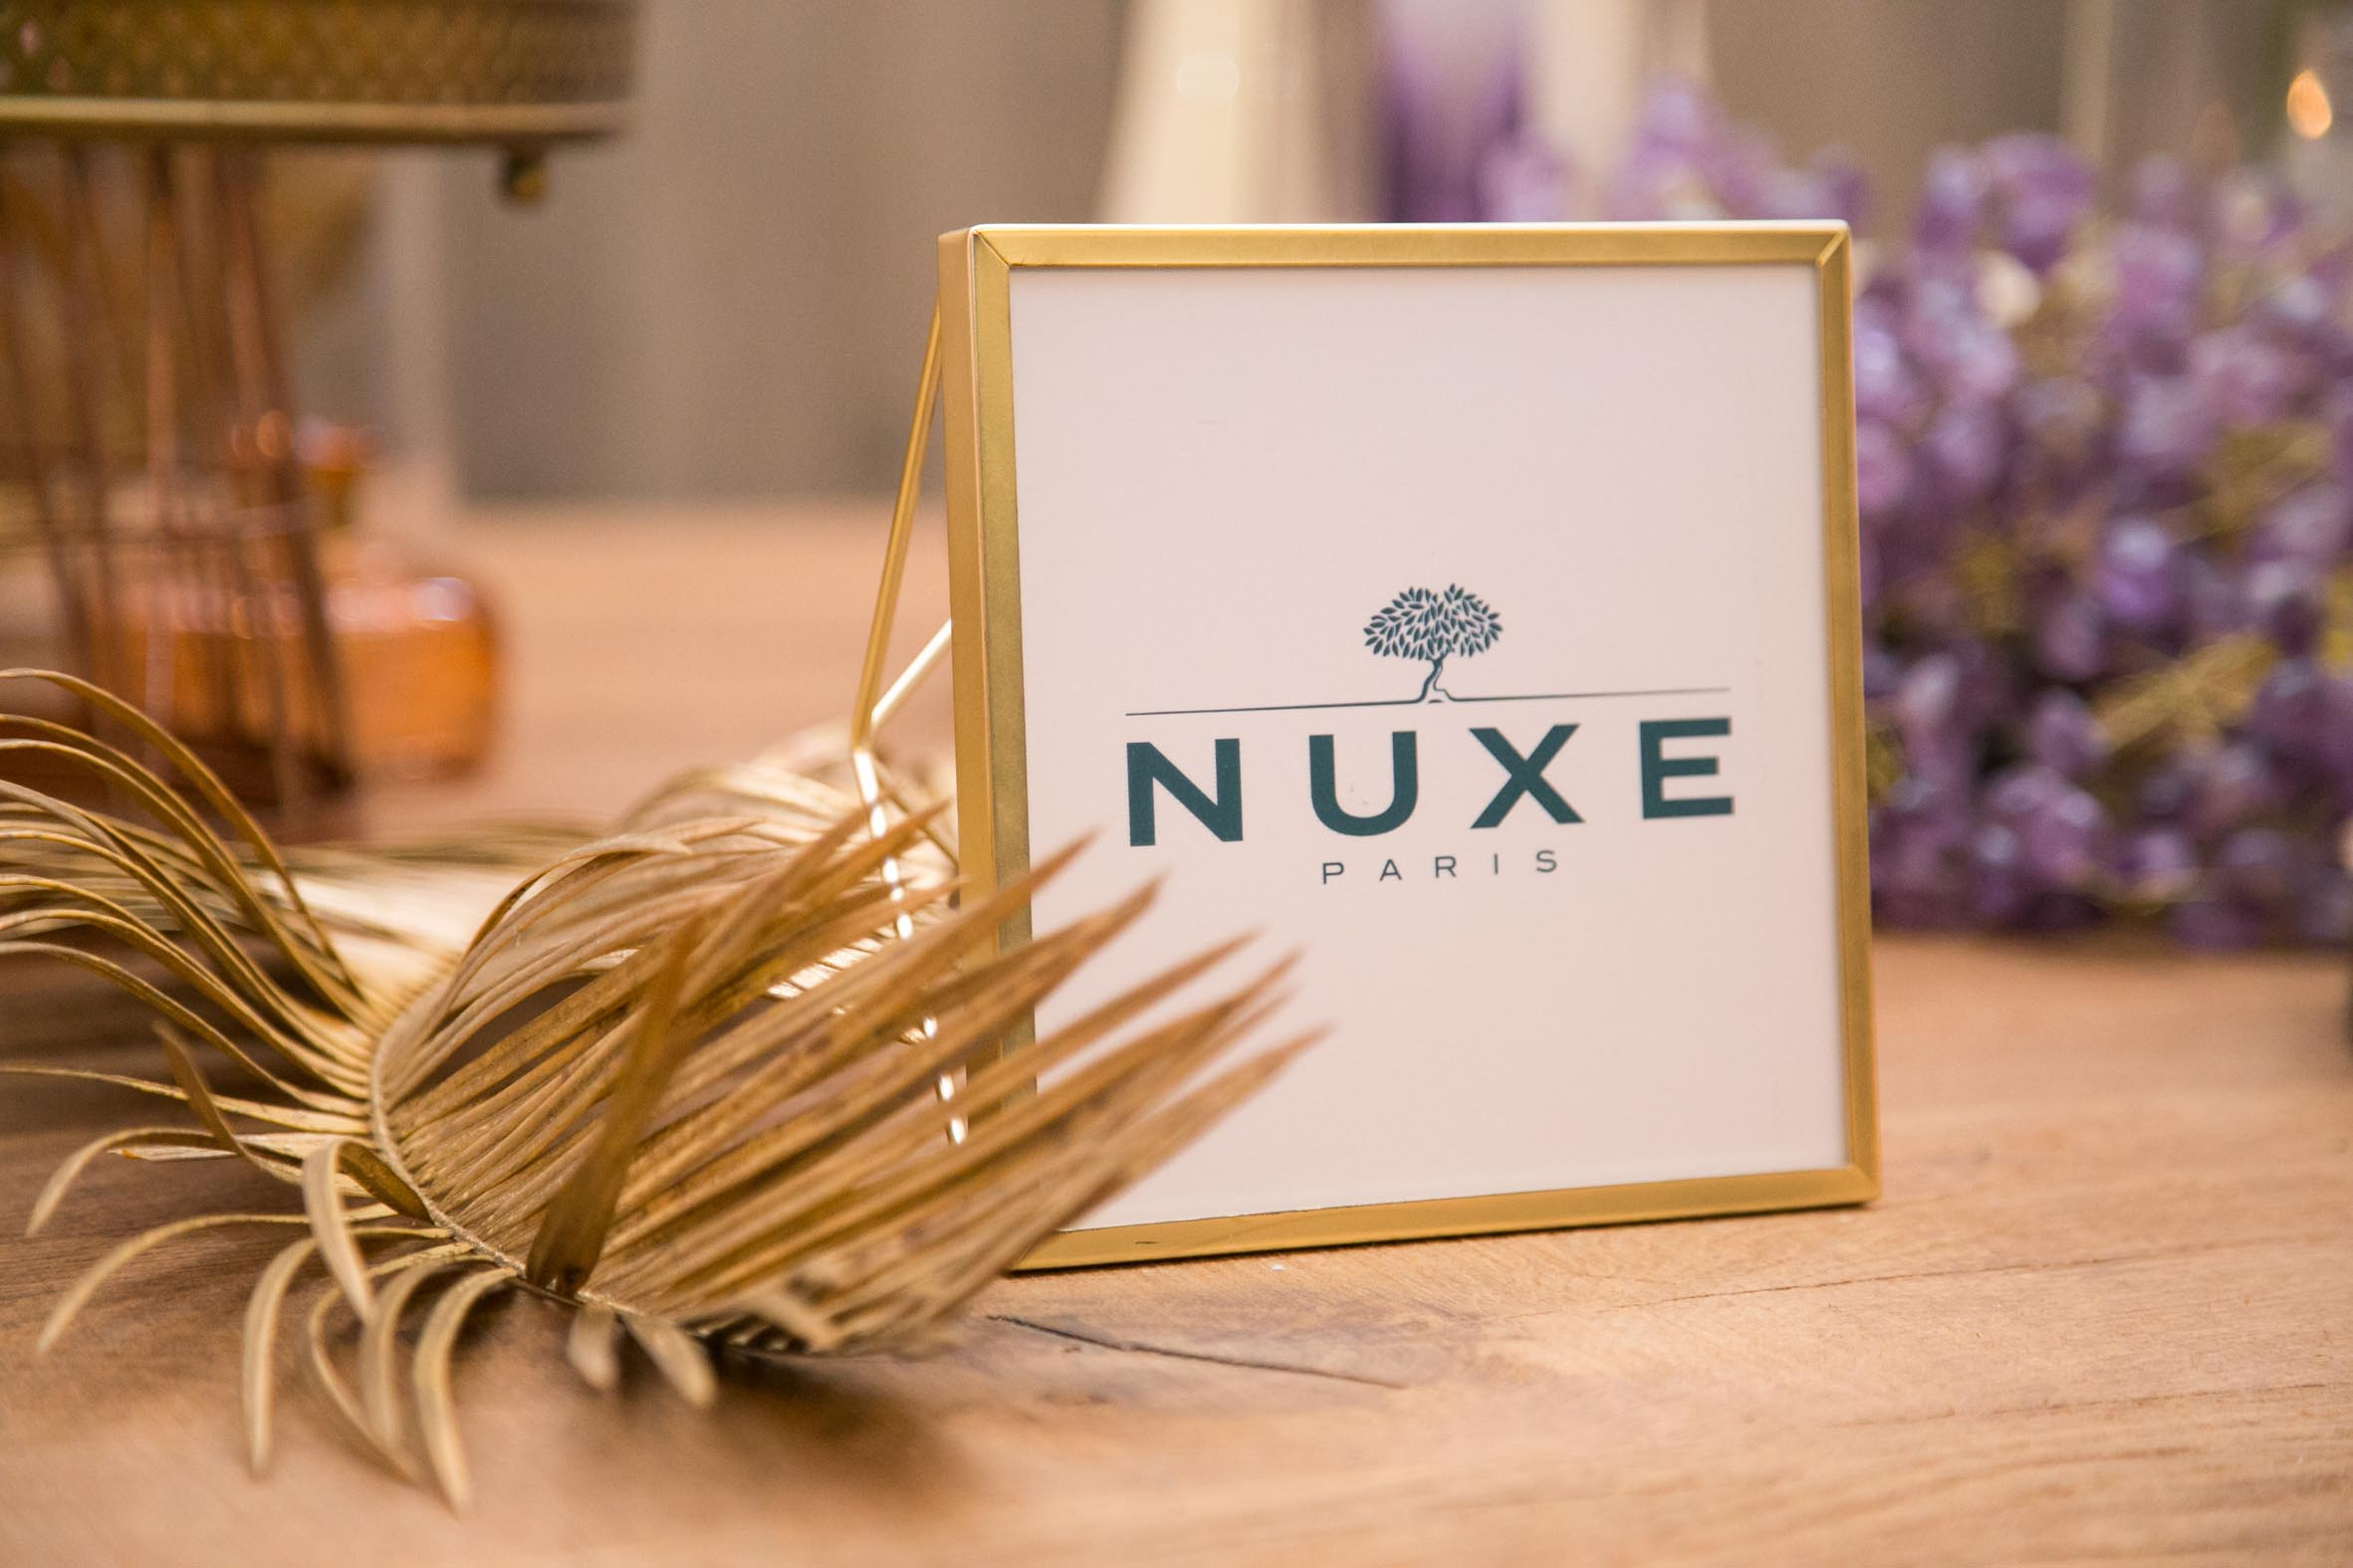 Nuxe pressday Set Styling Project @ MeetLab Milano Brera 01